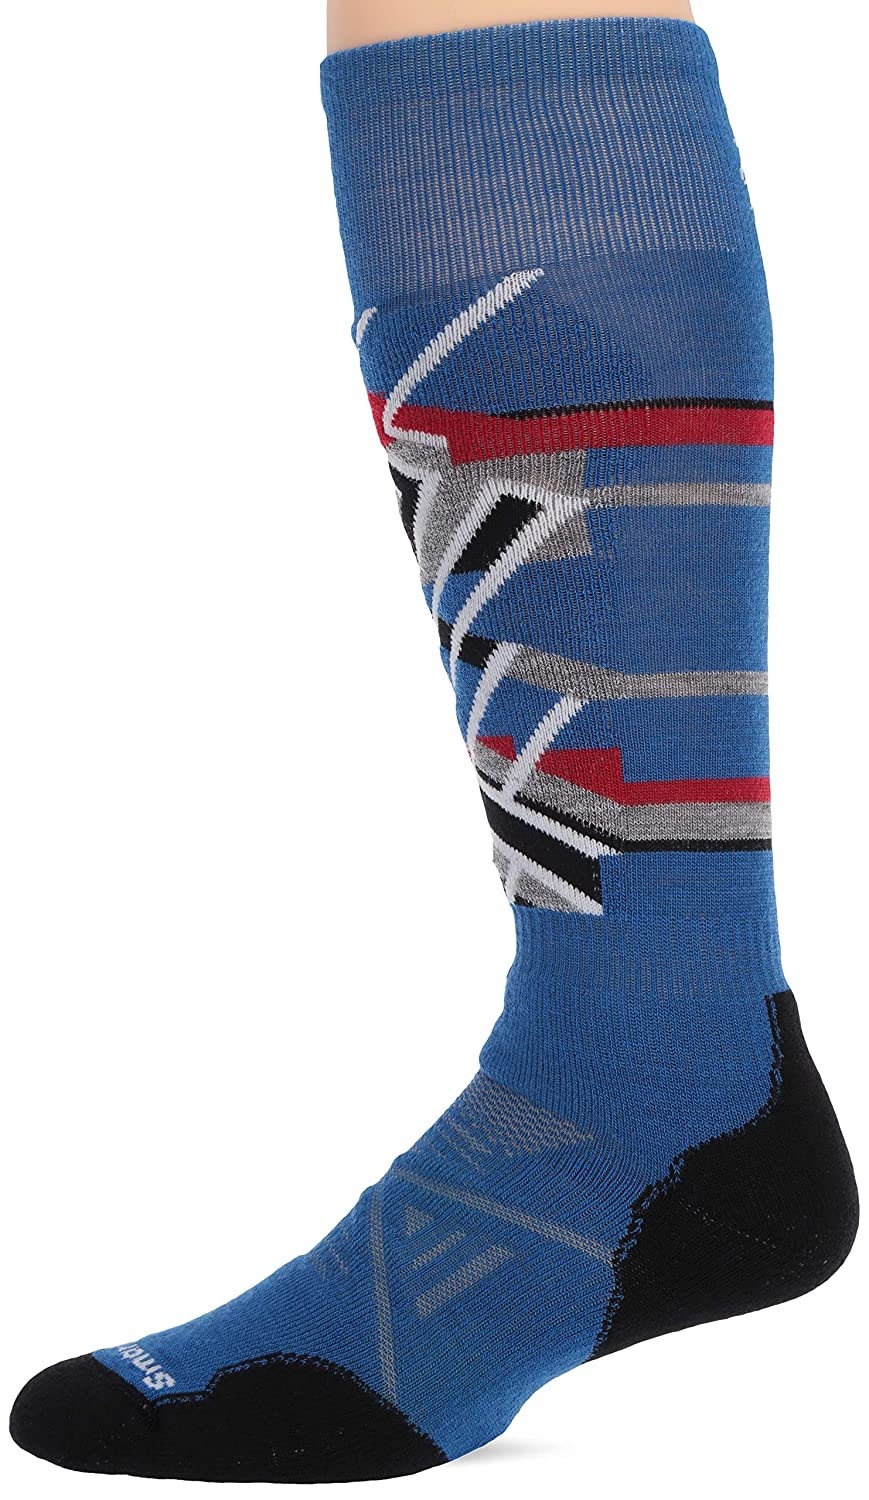 Smartwool Herren PhD Ski Medium Pattern Socks, Bright Blue, L